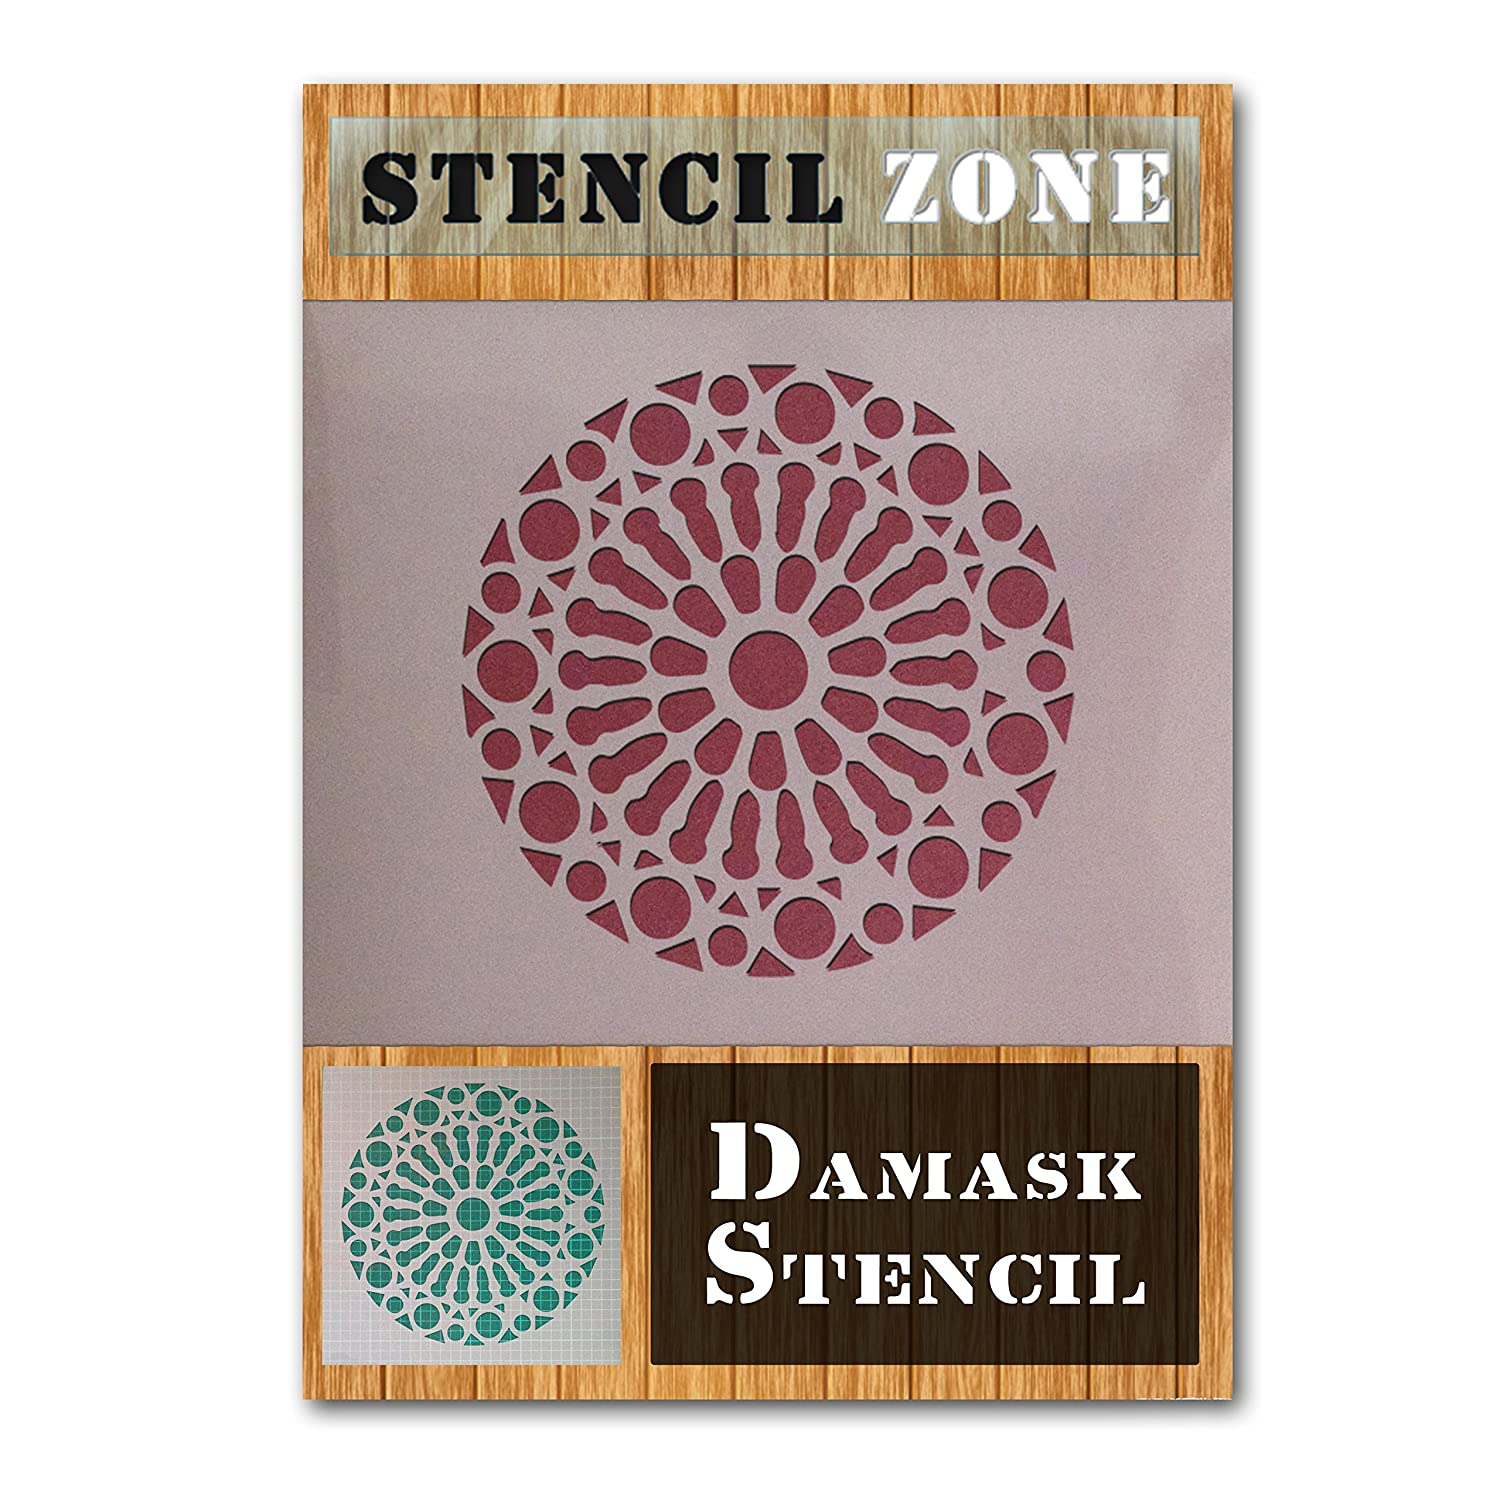 Damask Rosette Vintage Shabby Chic Mylar Air Brush Painting Wall Art Stencil (A5 Size Stencil - XSmall) STENCIL ZONE